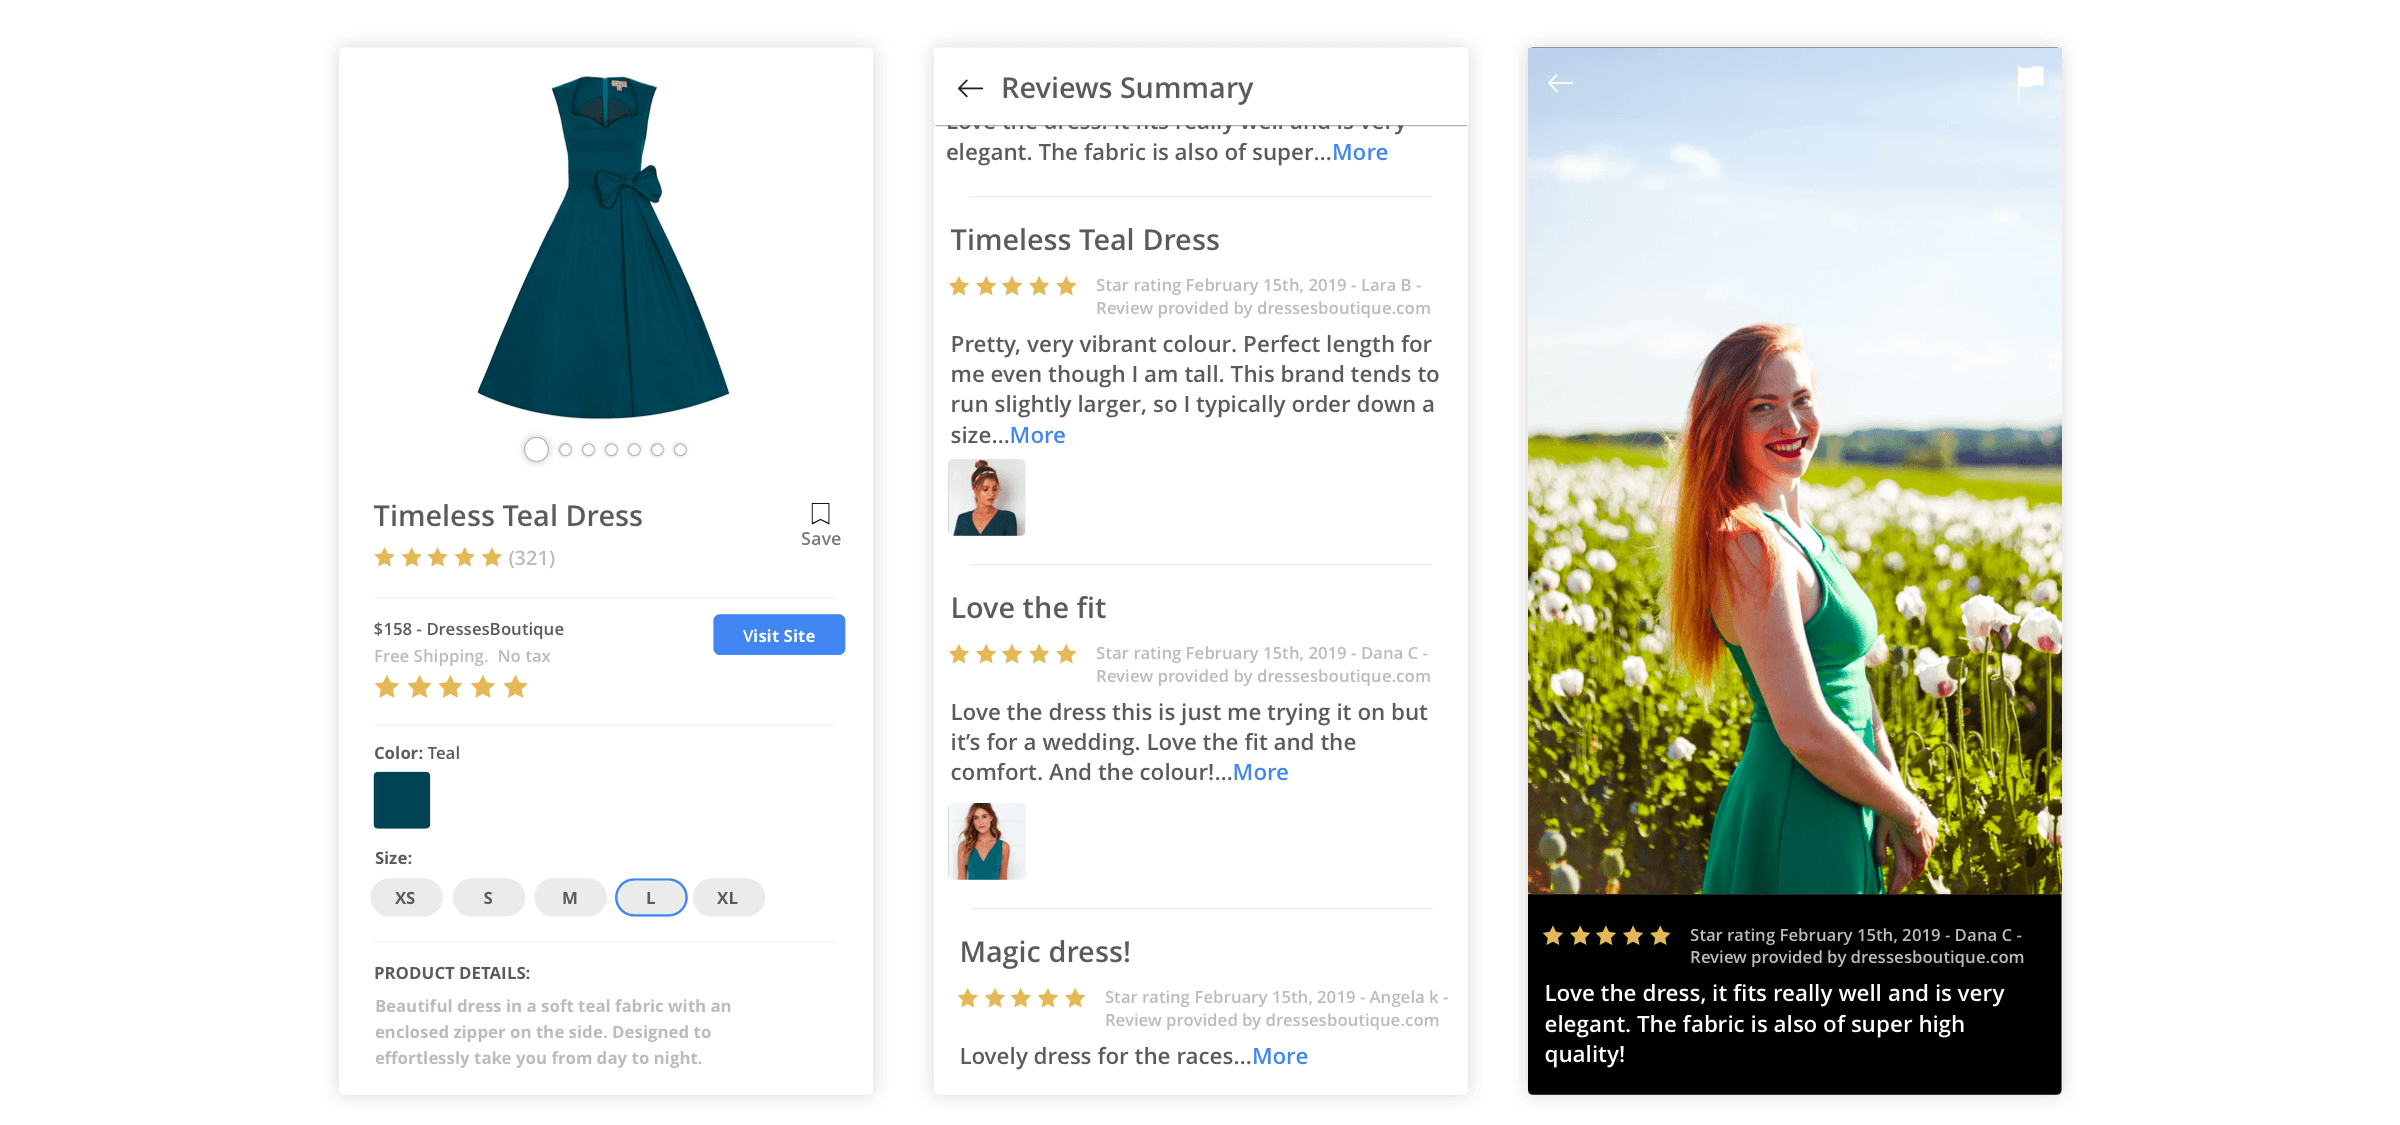 Google News Digest Maverick New Ads Features Users Photos In Shopping